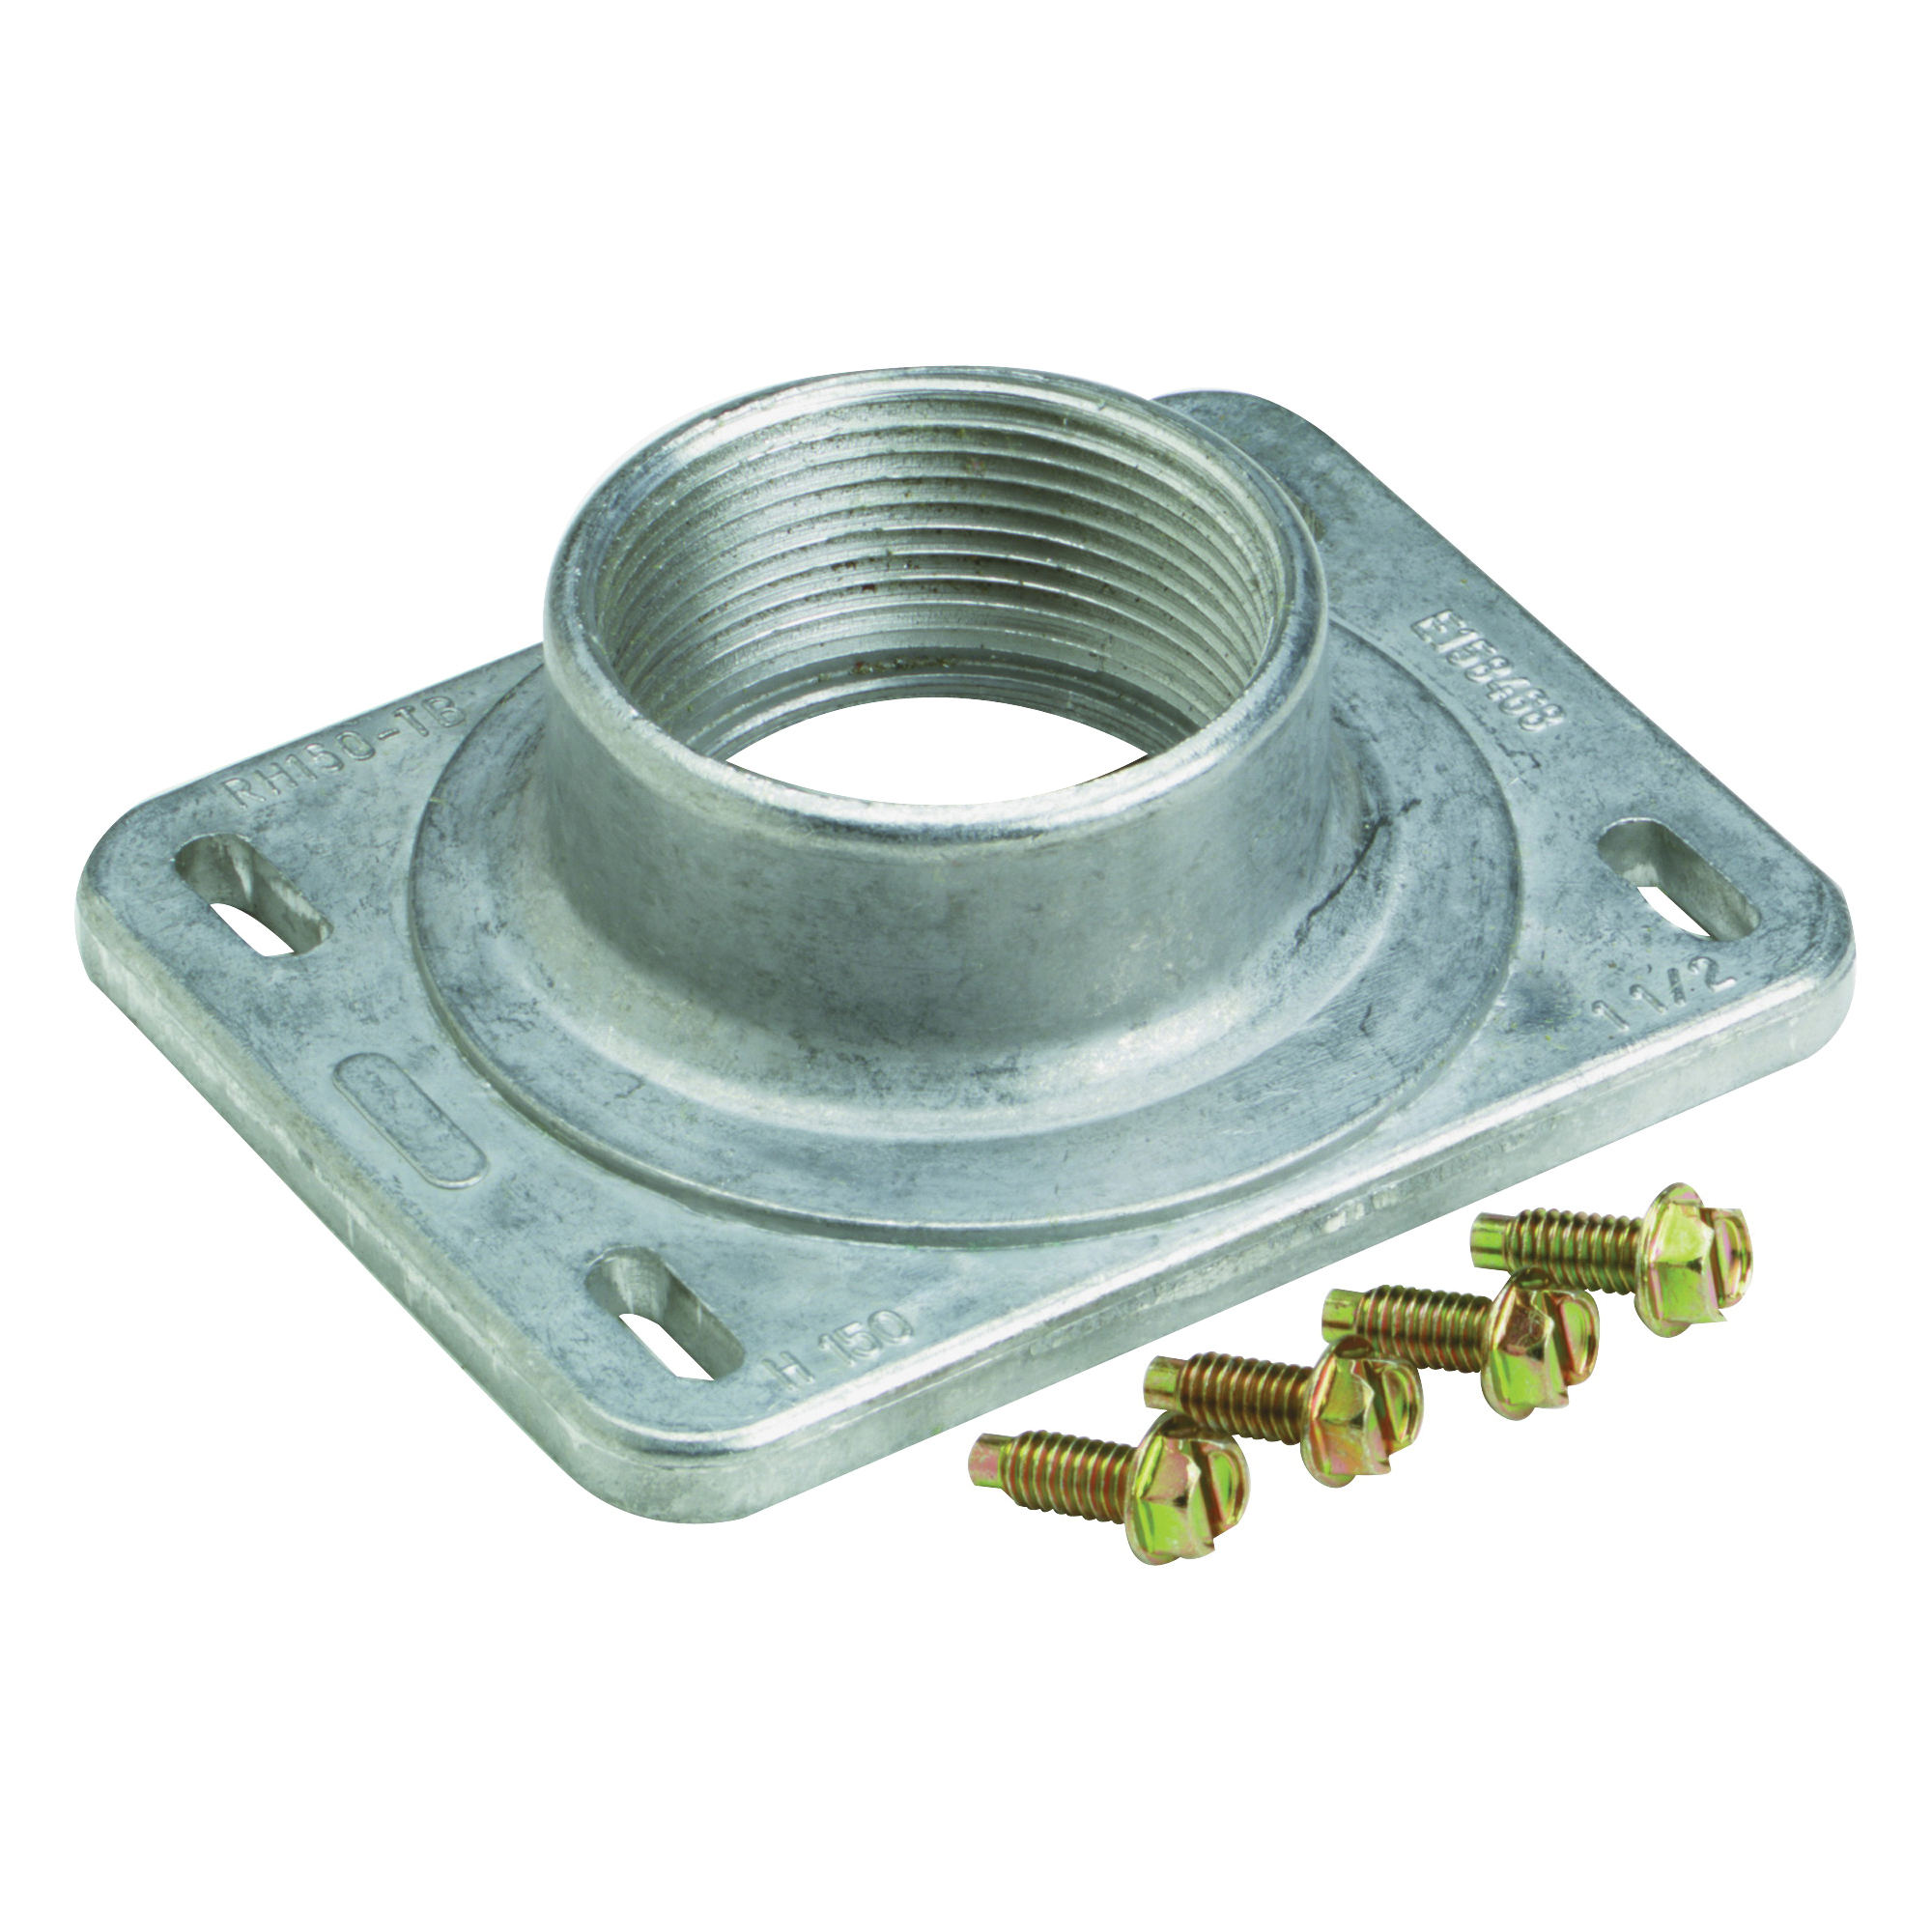 Picture of Cutler-Hammer RH150P Conduit Hub, 1-1/2 in, Cast Iron